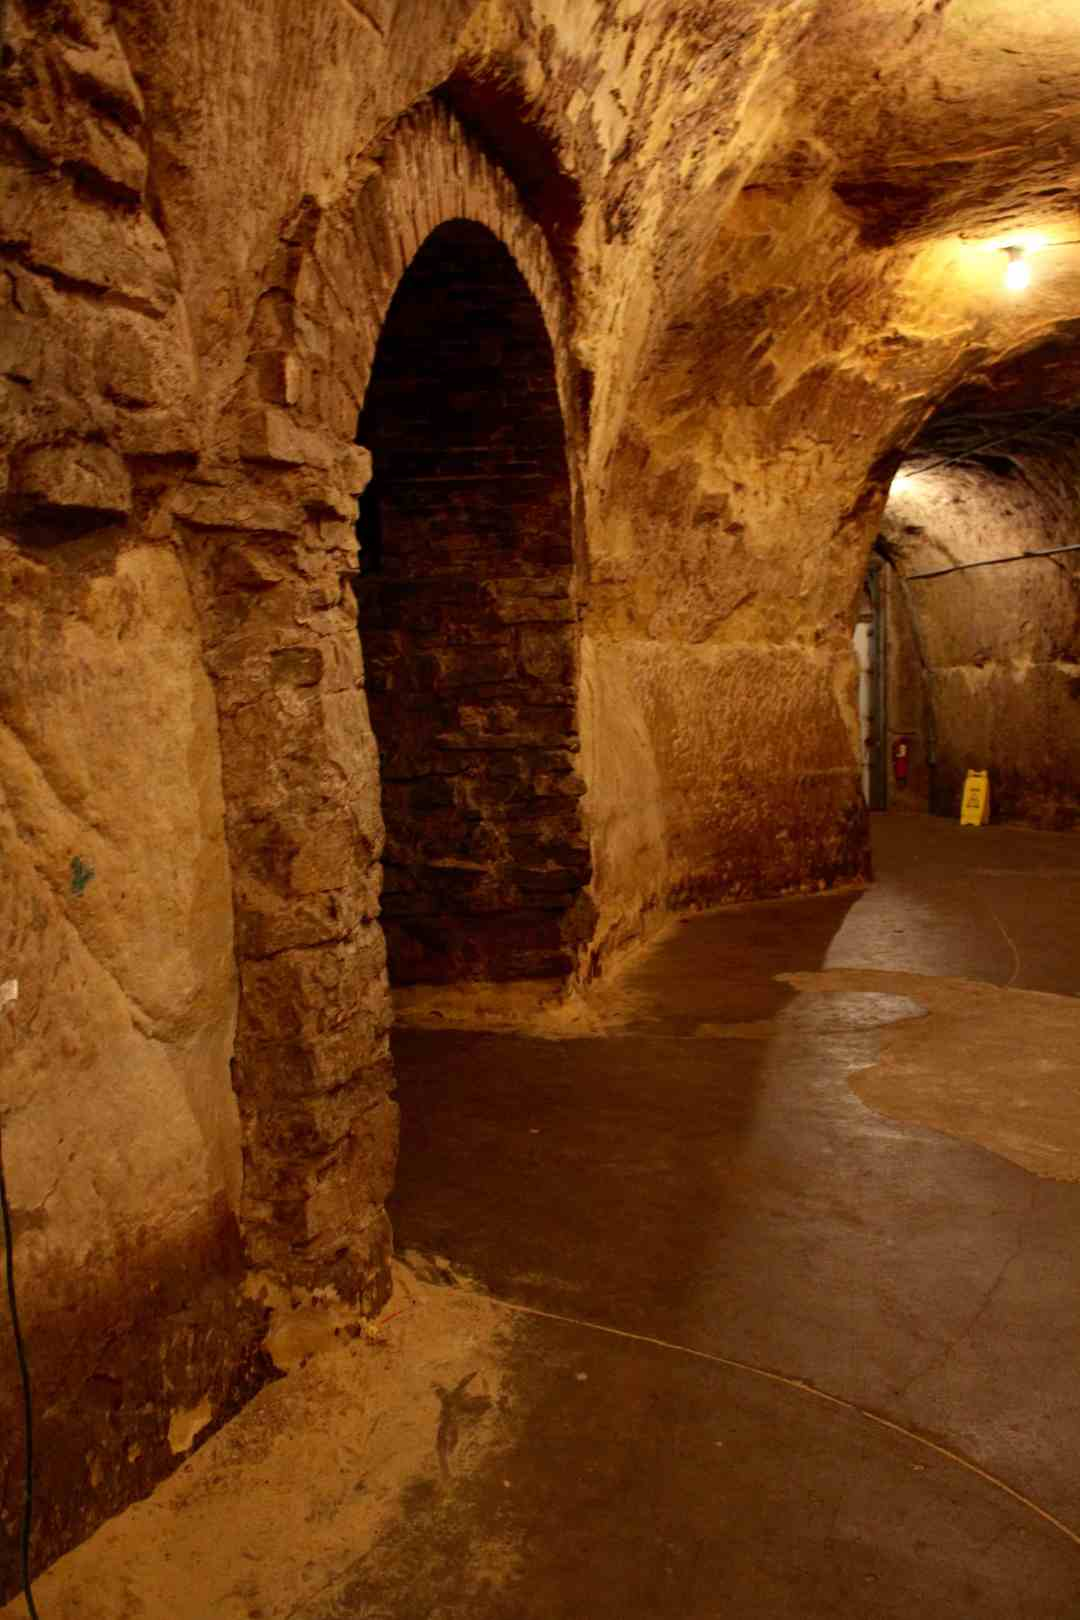 Haunted Hallways of Wabasha Street Caves